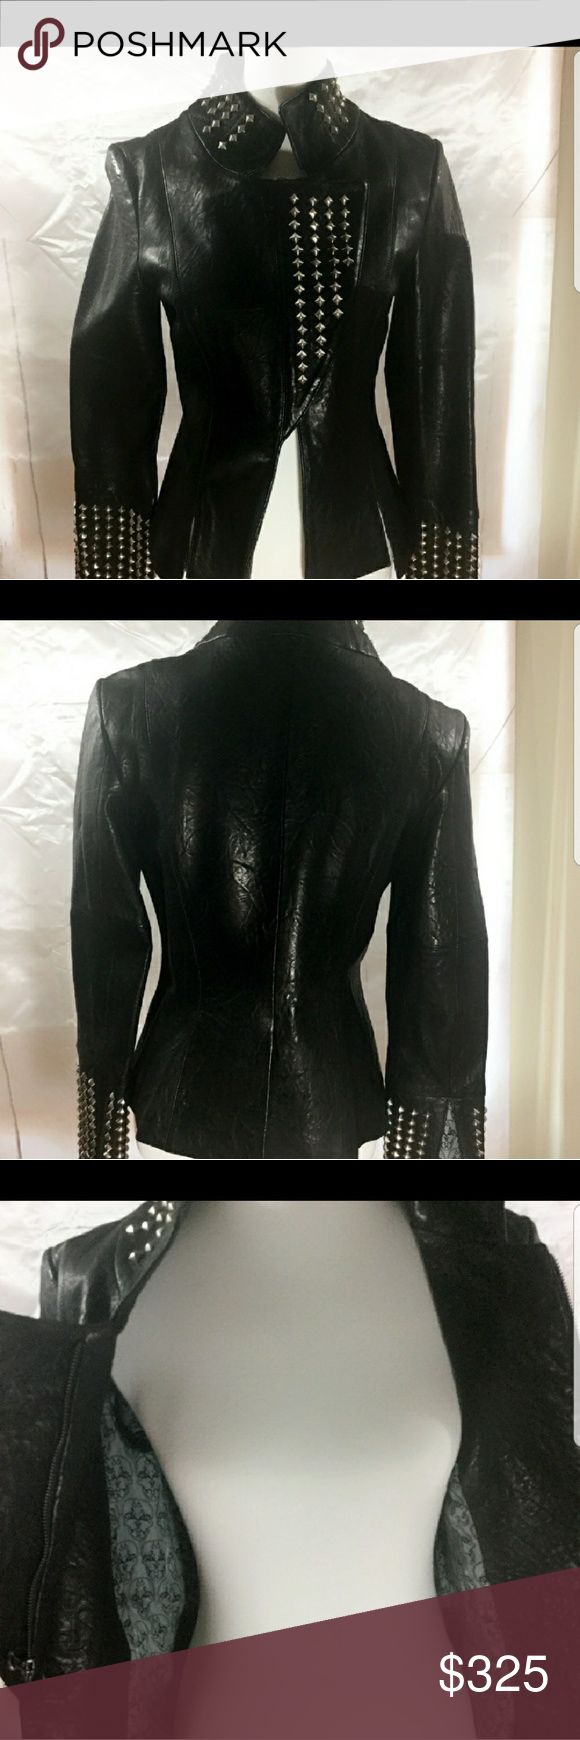 AUTH THOMAS WYLDE STUDDED LEATHER JACKET Super edgy!! Worn under 5 times. I love the style on this jacket! You will get a ton of compliments and jealous friends!! Super soft and silky lining with trademark skulls from Thomas Wylde Thomas Wylde Jackets & Coats